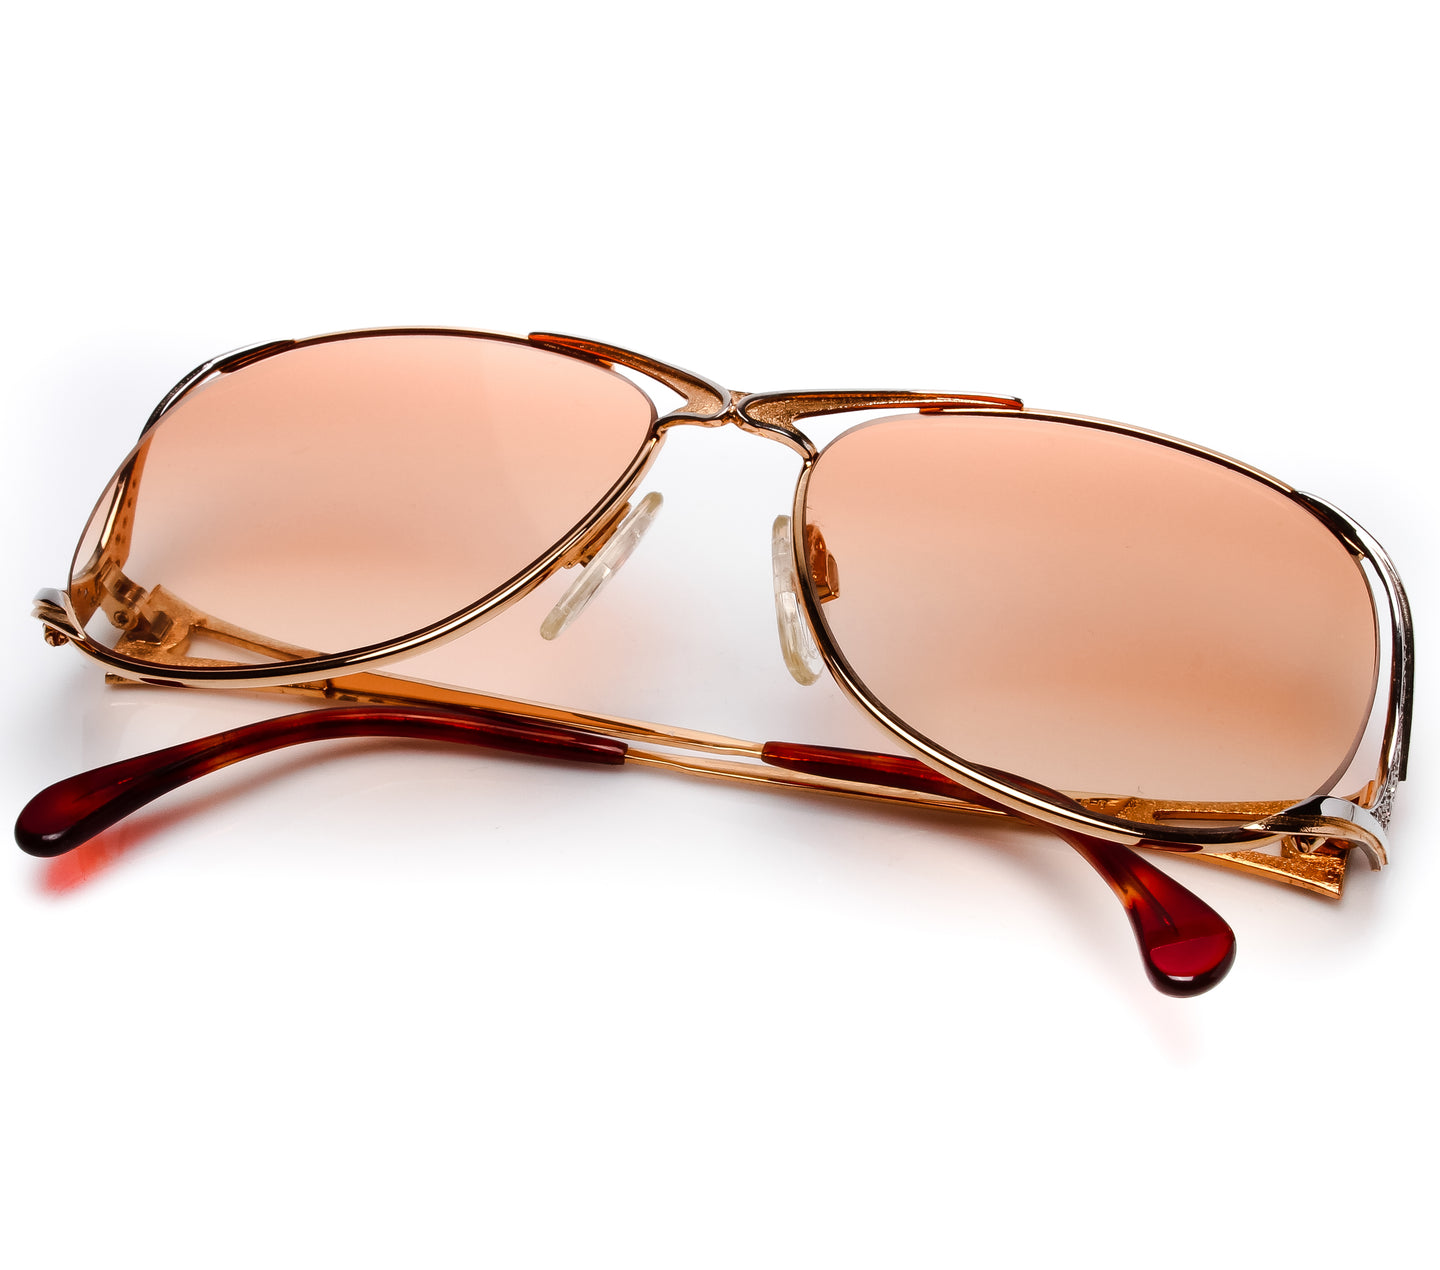 Neostyle 368 Thumbnail, Neostyle , glasses frames, eyeglasses online, eyeglass frames, mens glasses, womens glasses, buy glasses online, designer eyeglasses, vintage sunglasses, retro sunglasses, vintage glasses, sunglass, eyeglass, glasses, lens, vintage frames company, vf